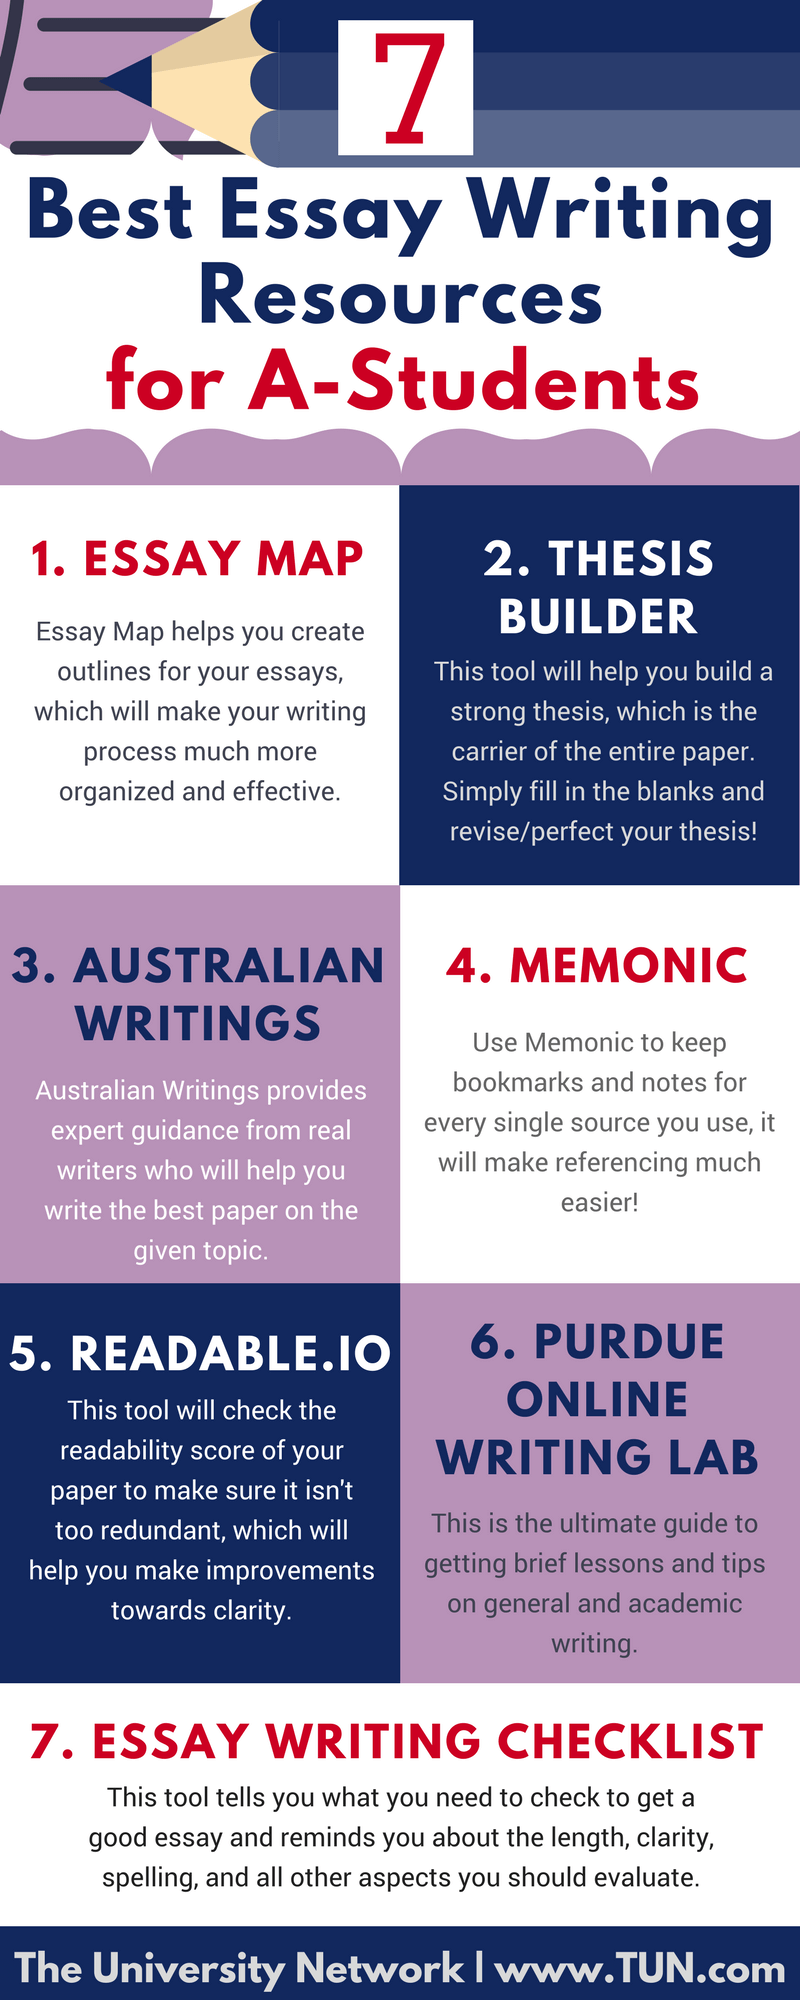 Best Essay Writing Resources For Astudents  Resources For  Here Are  Convenient Essay Writing Resources That Will Help You Tackle  Those Papers